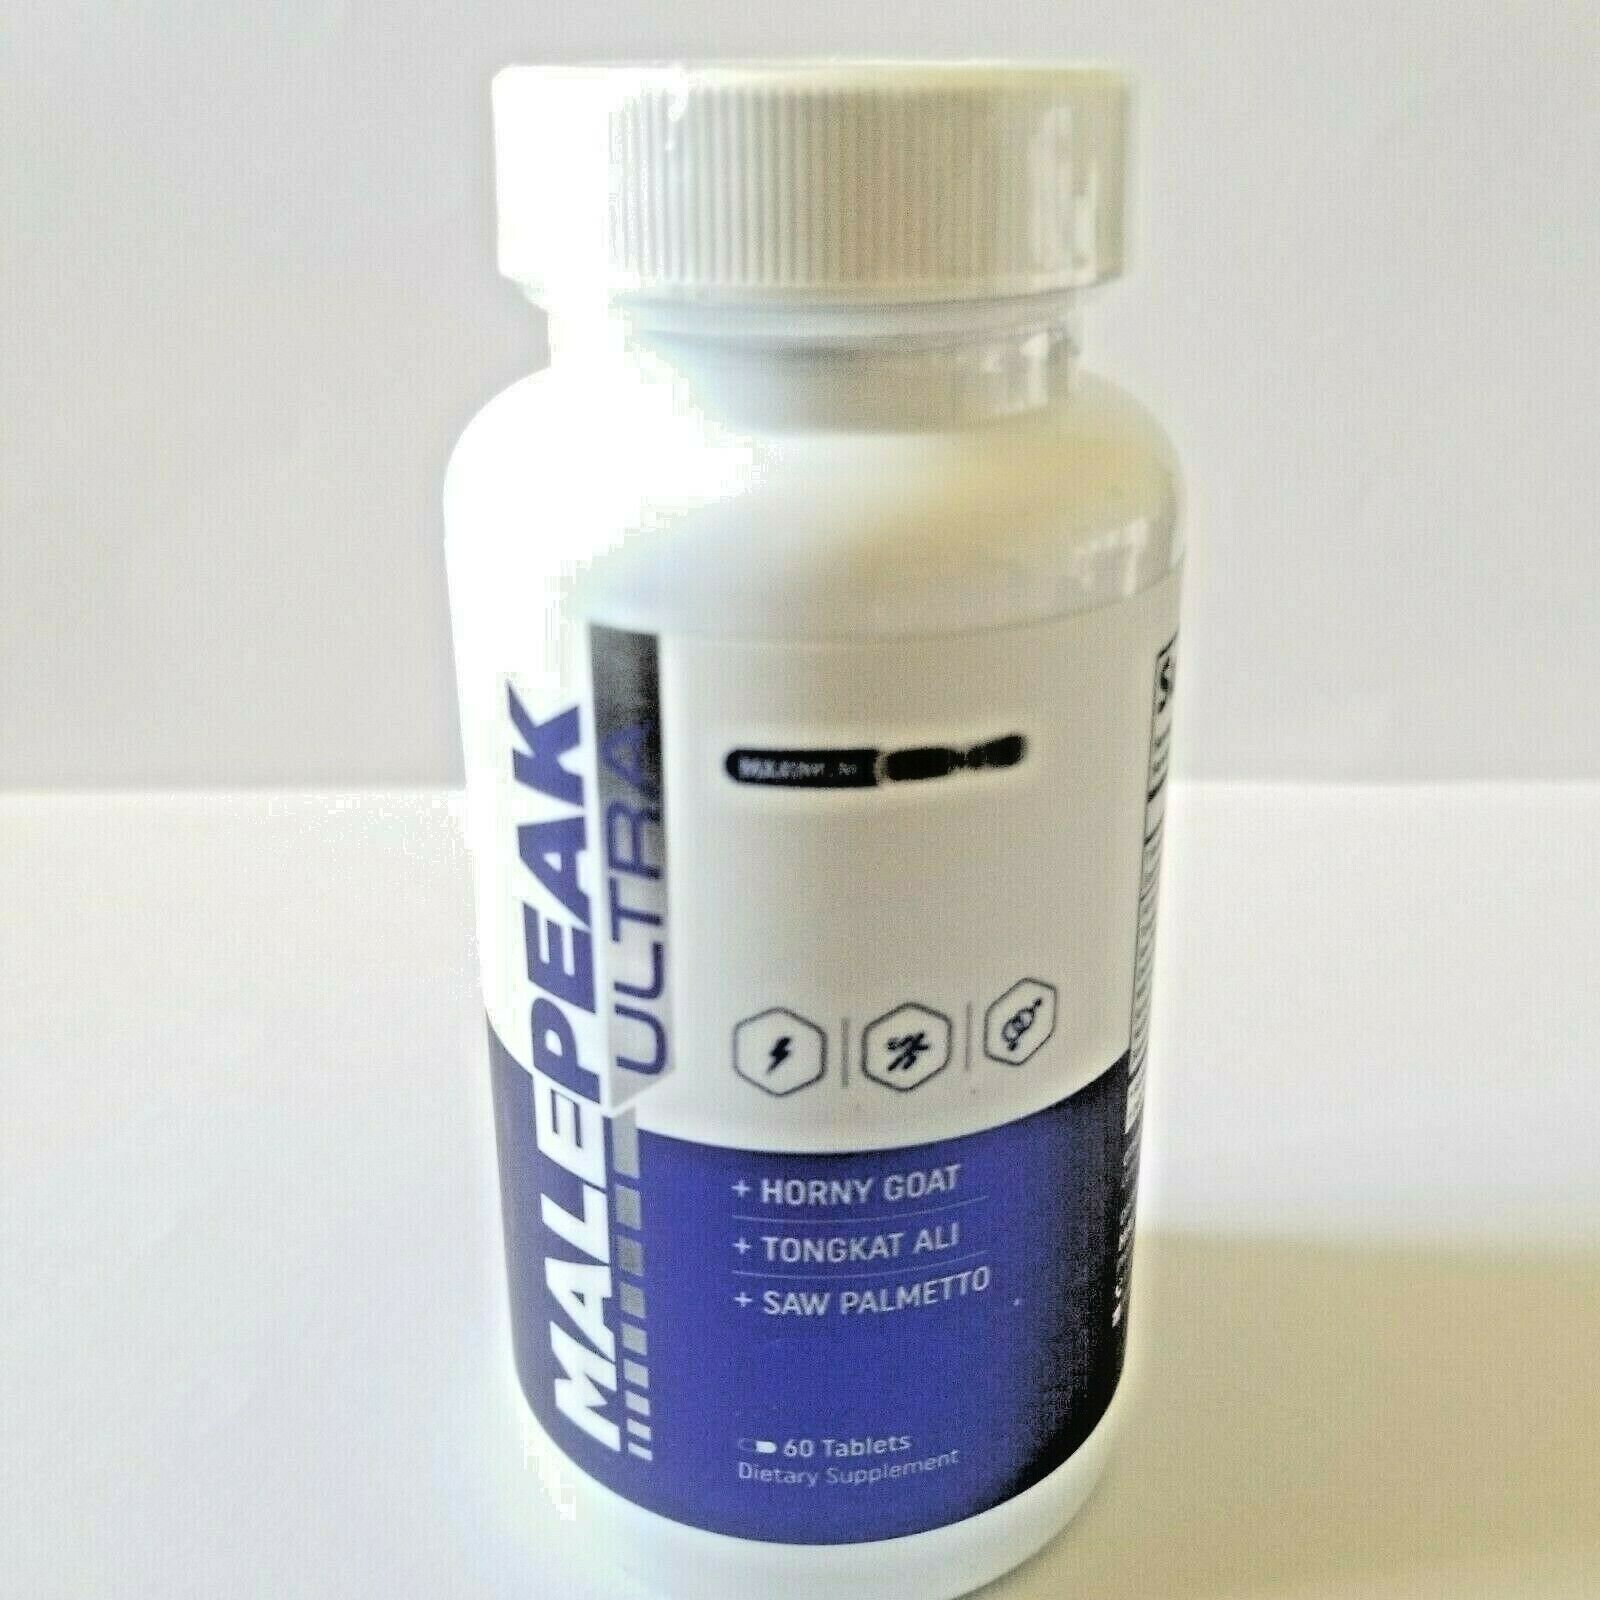 Male Peak Ultra Enhancement Formula